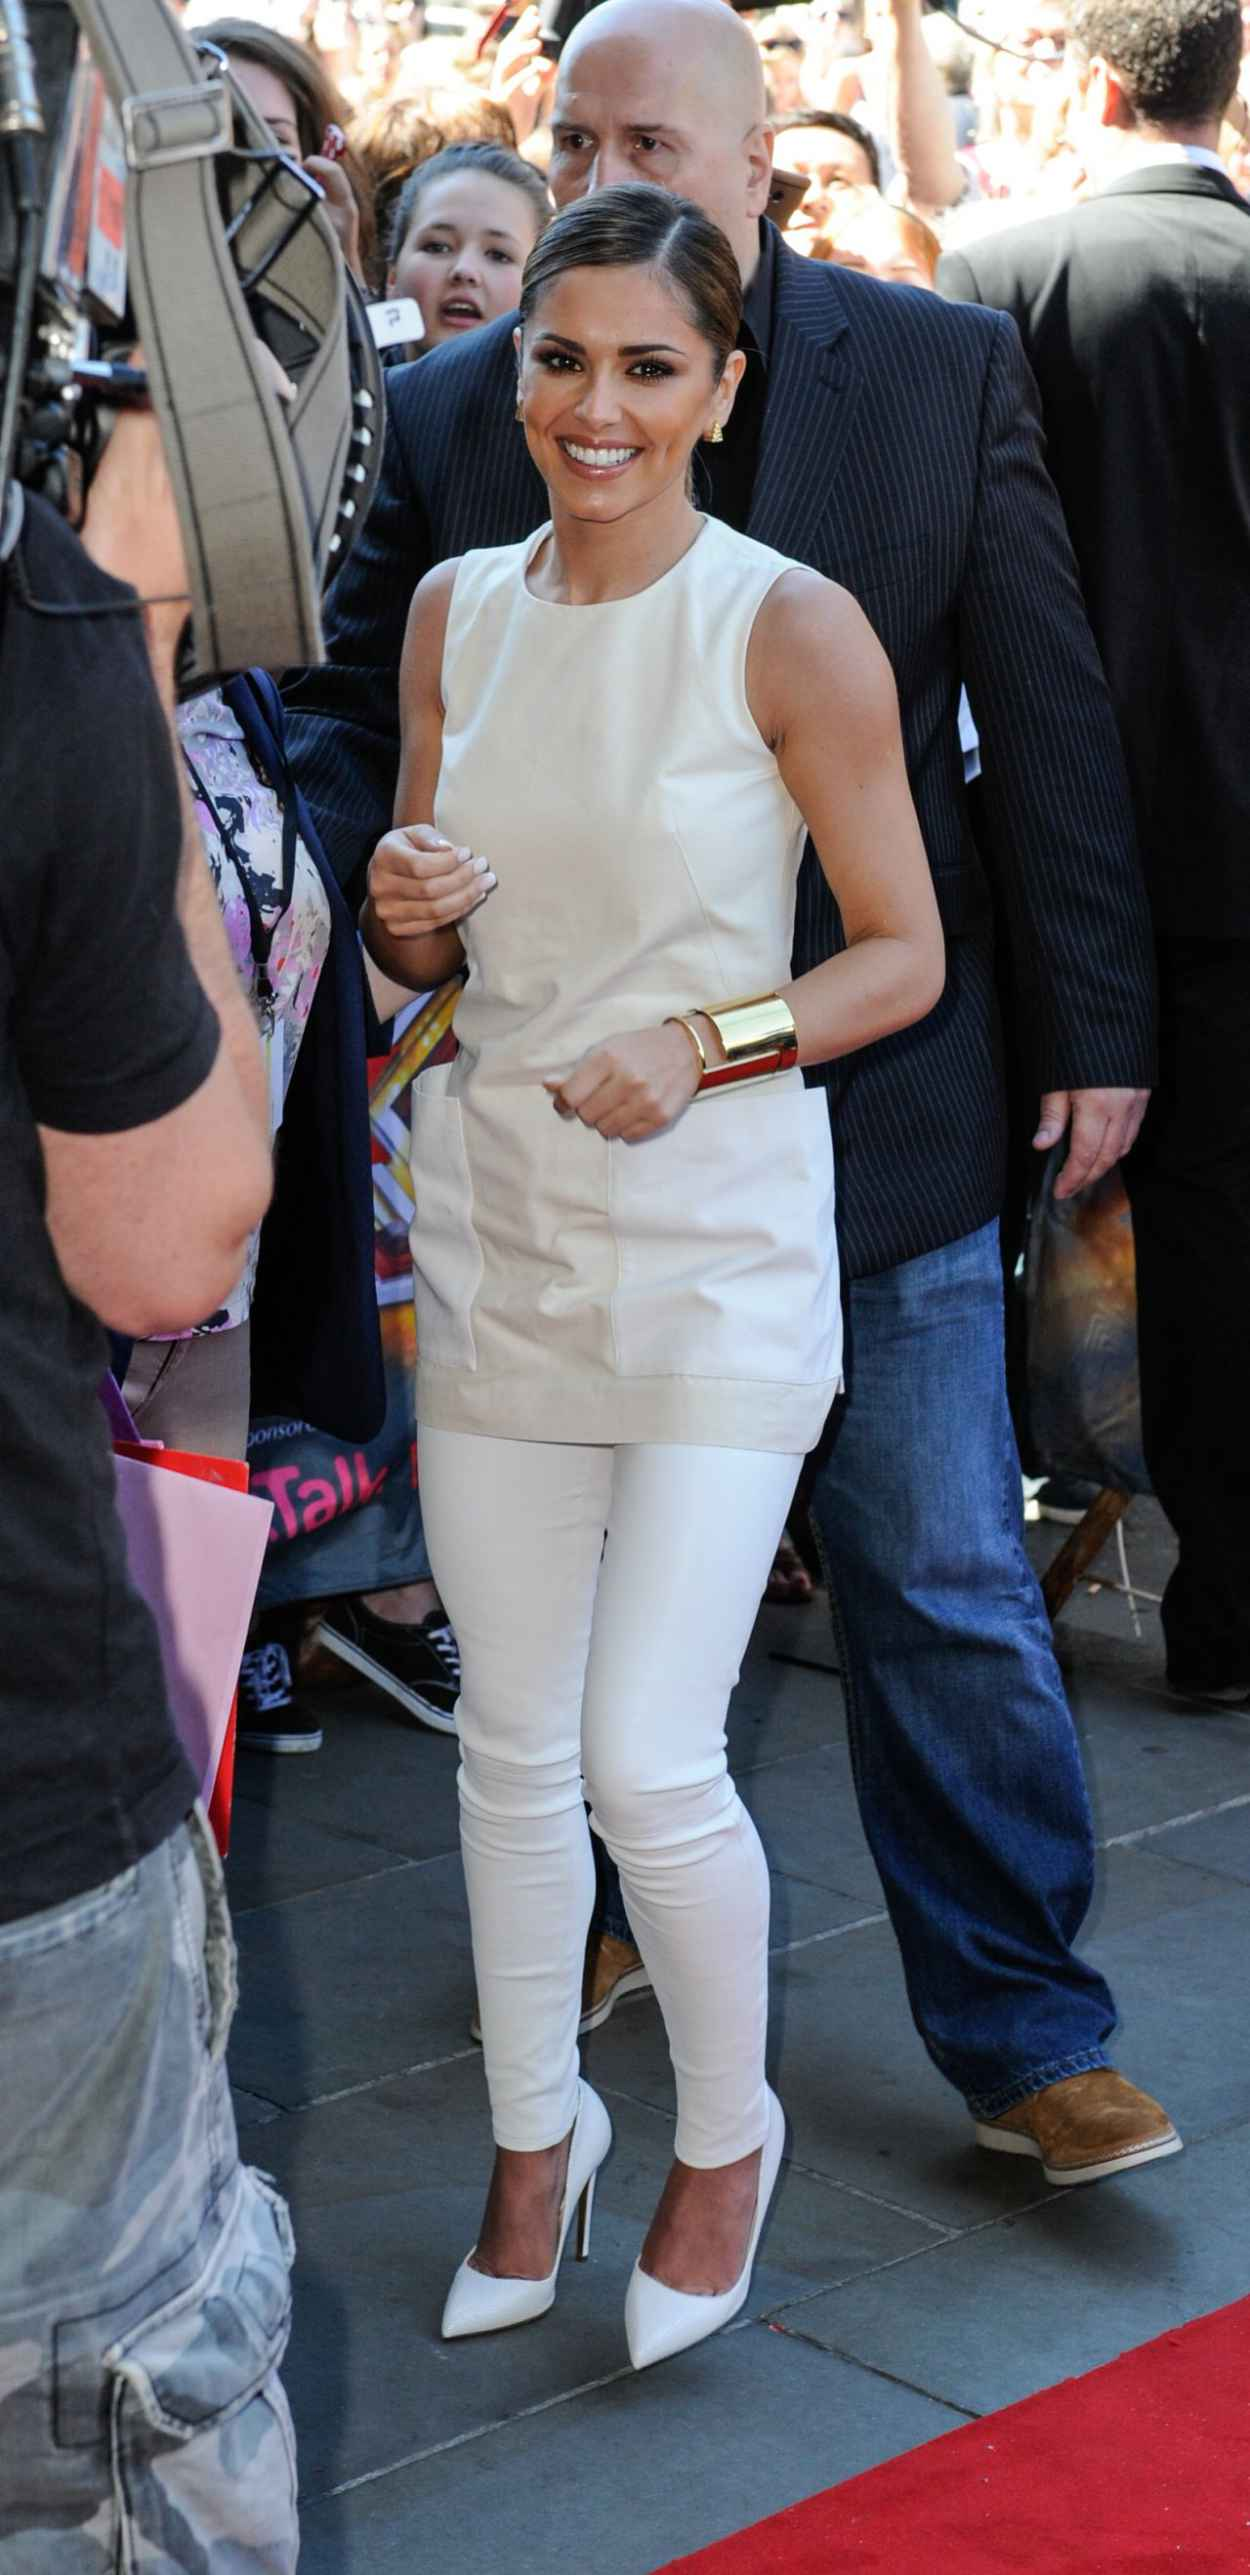 Cheryl Cole at X Factor auditions in Edinburgh - July 2015-5